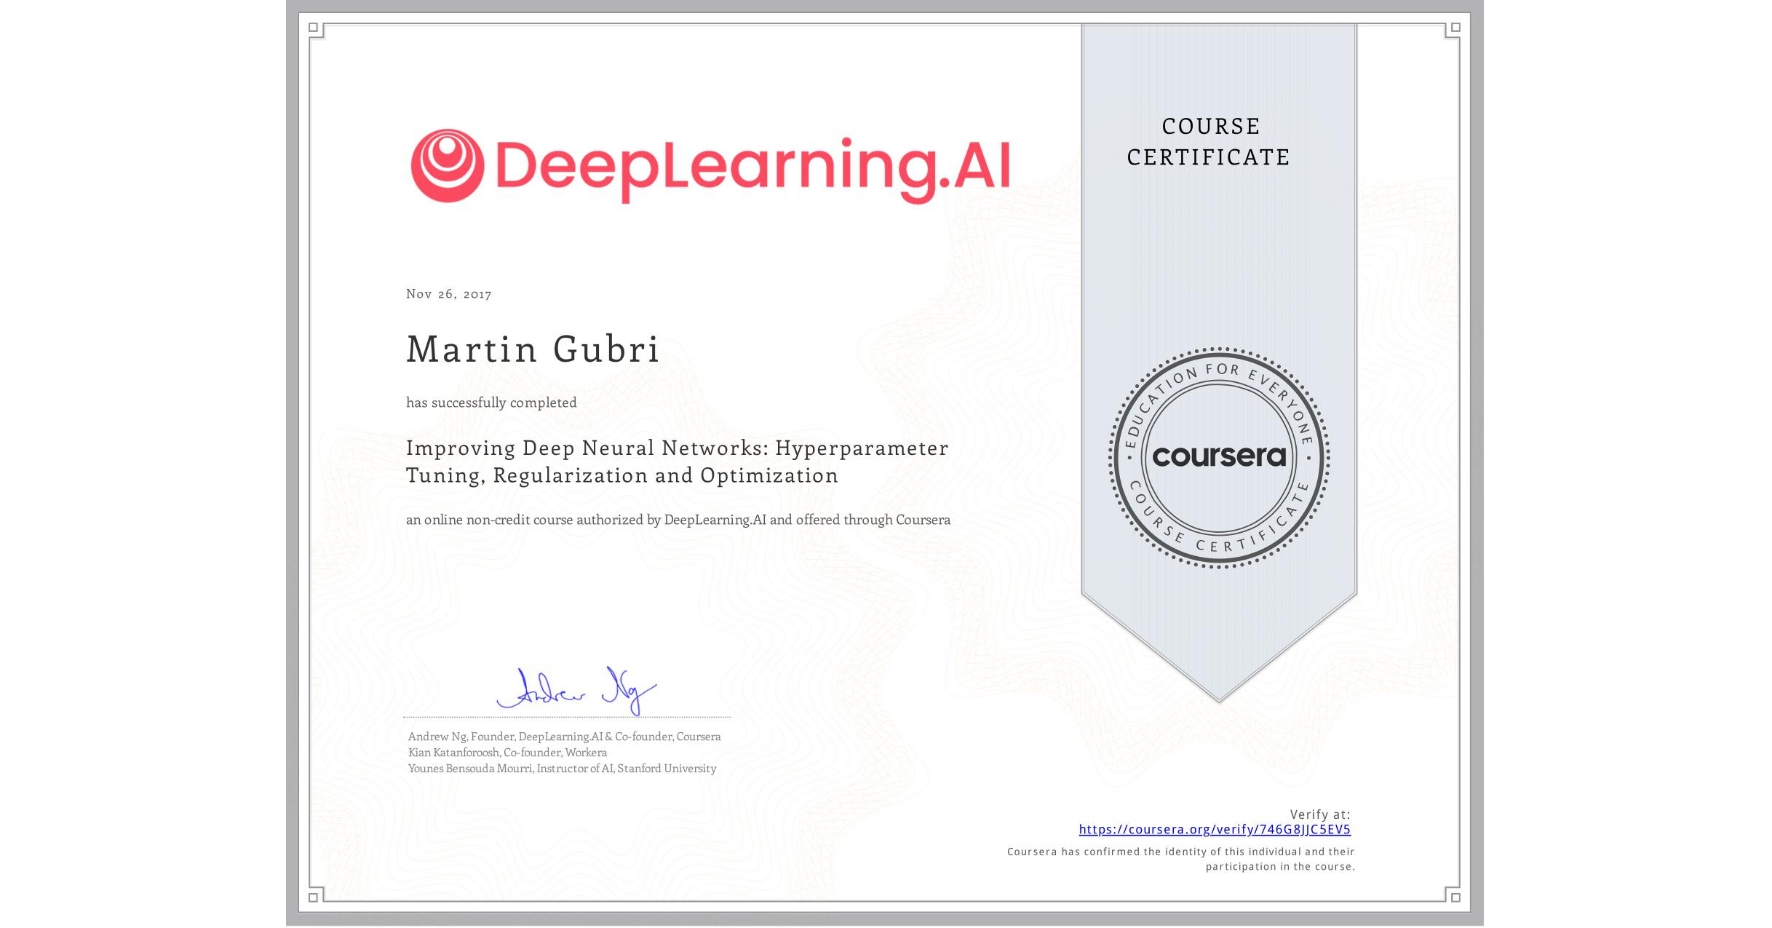 View certificate for Martin Gubri, Improving Deep Neural Networks: Hyperparameter Tuning, Regularization and Optimization, an online non-credit course authorized by DeepLearning.AI and offered through Coursera